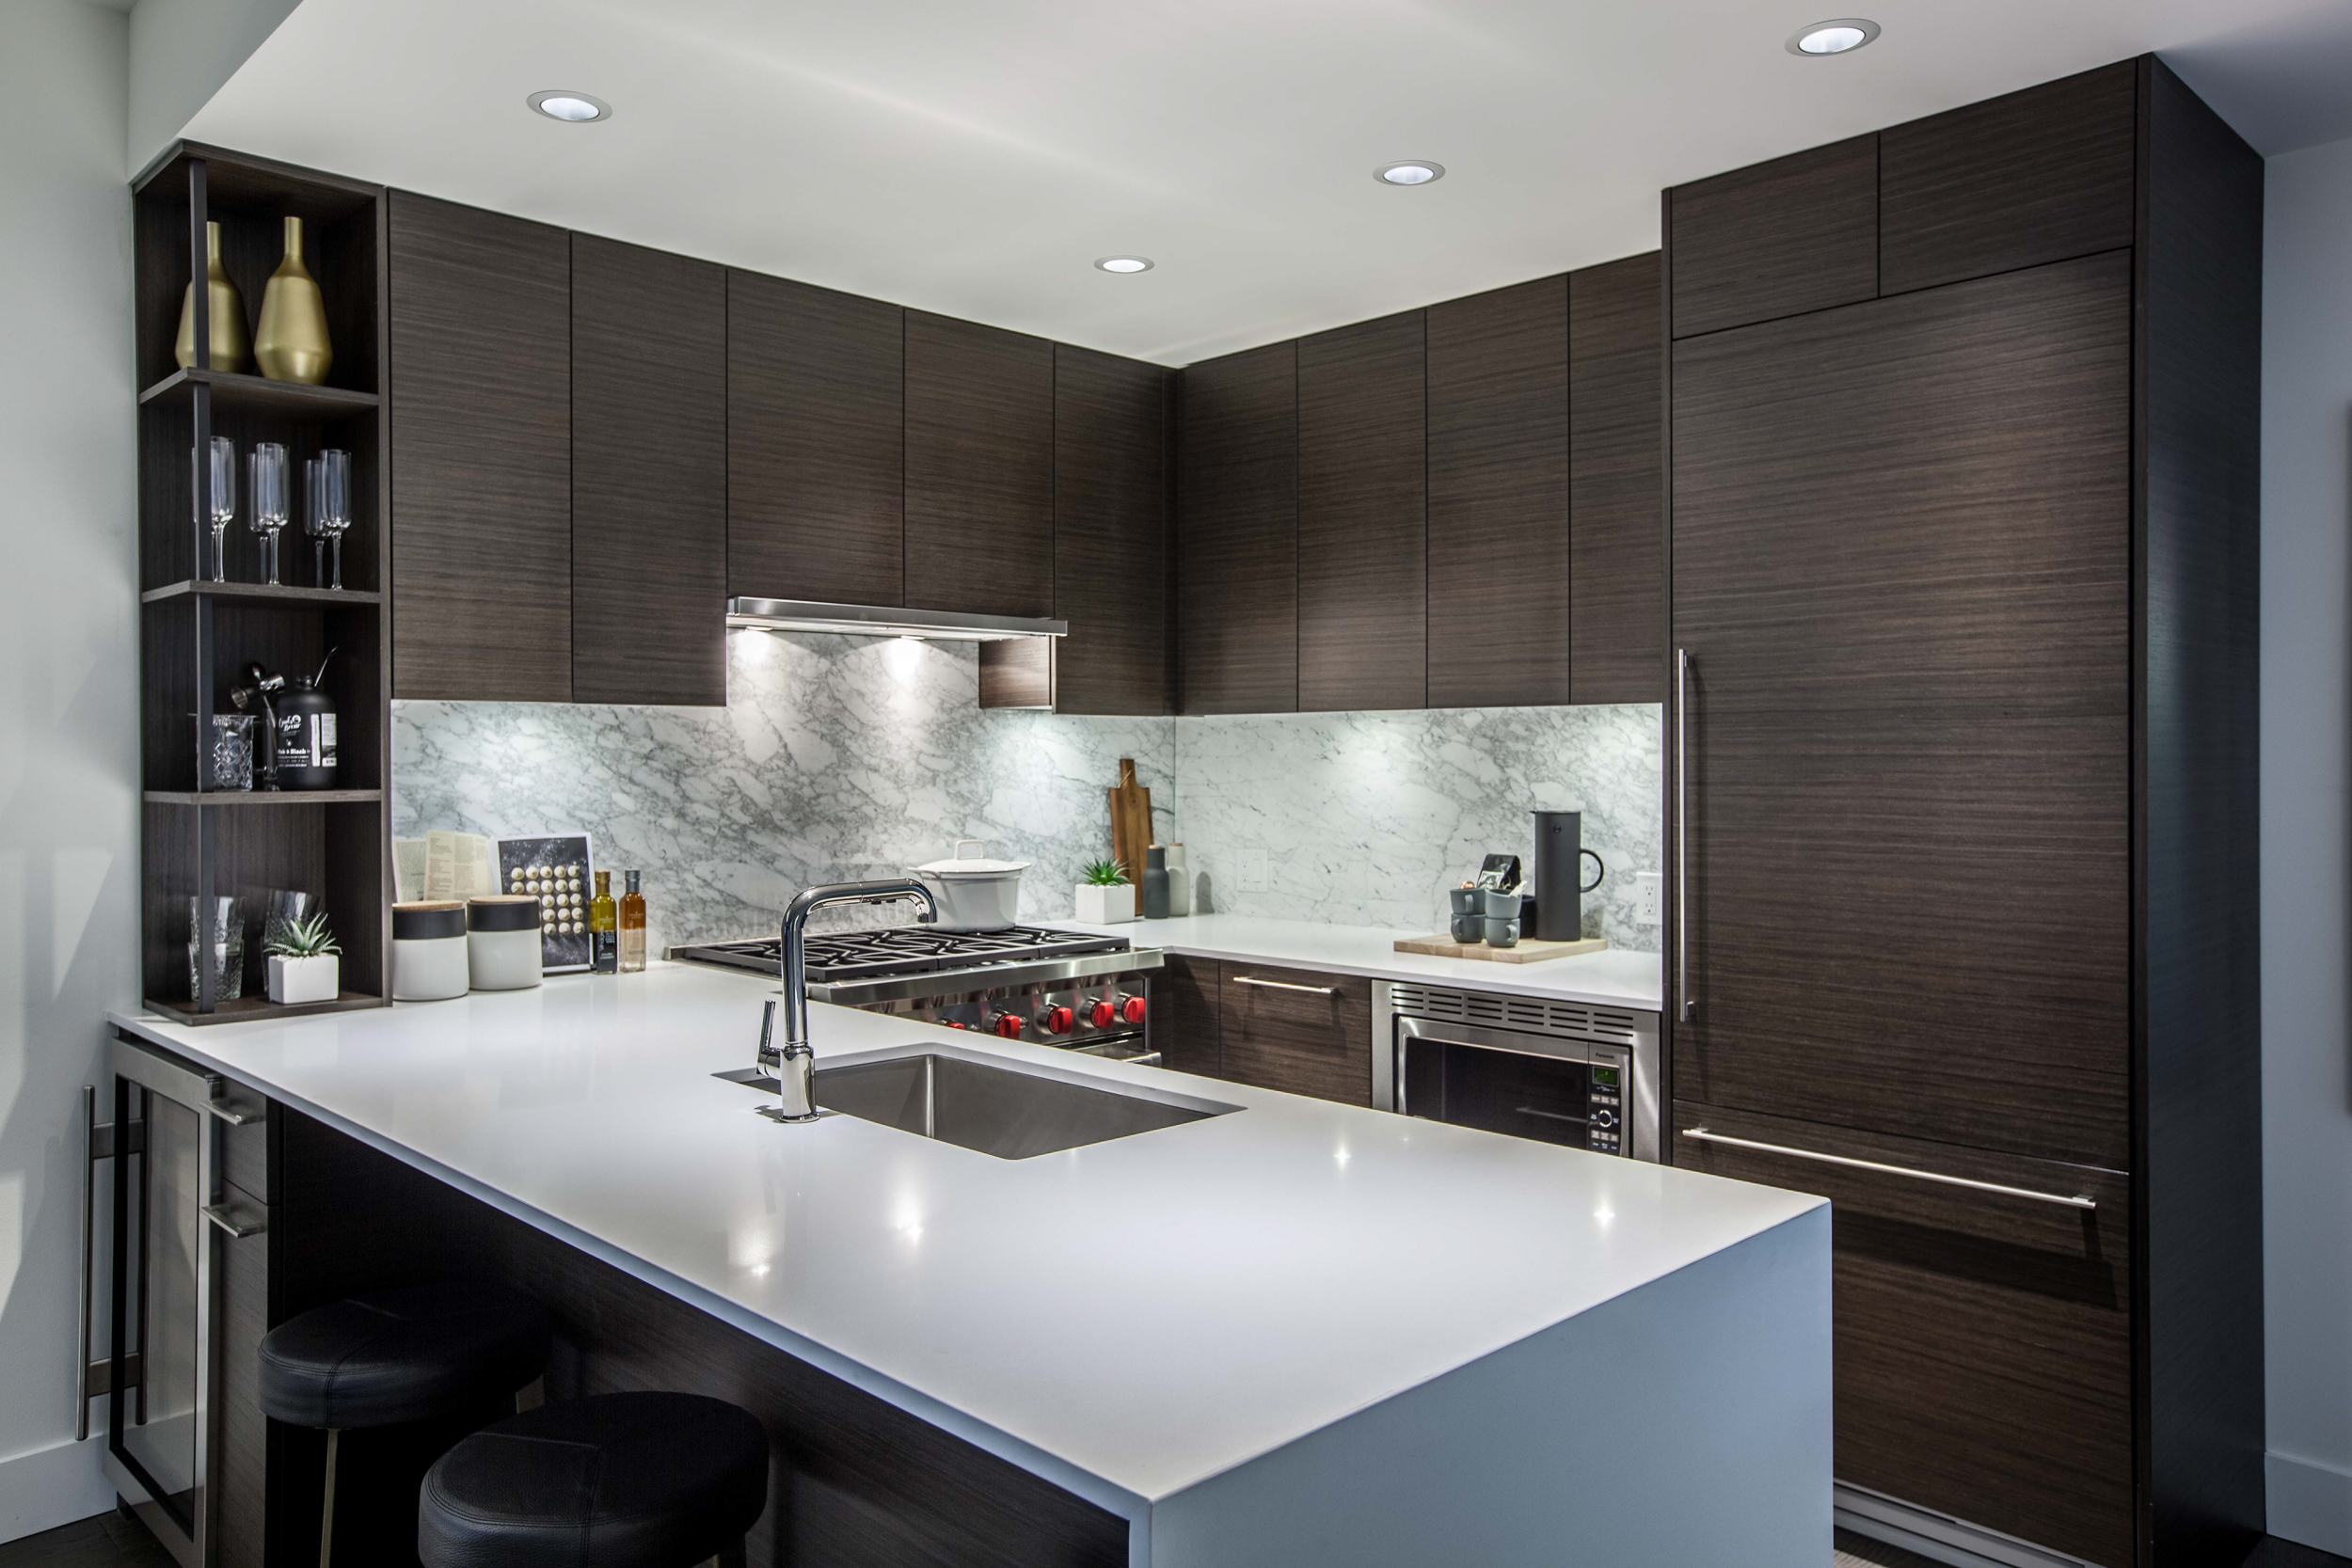 vancouver-showhome--0001.JPG